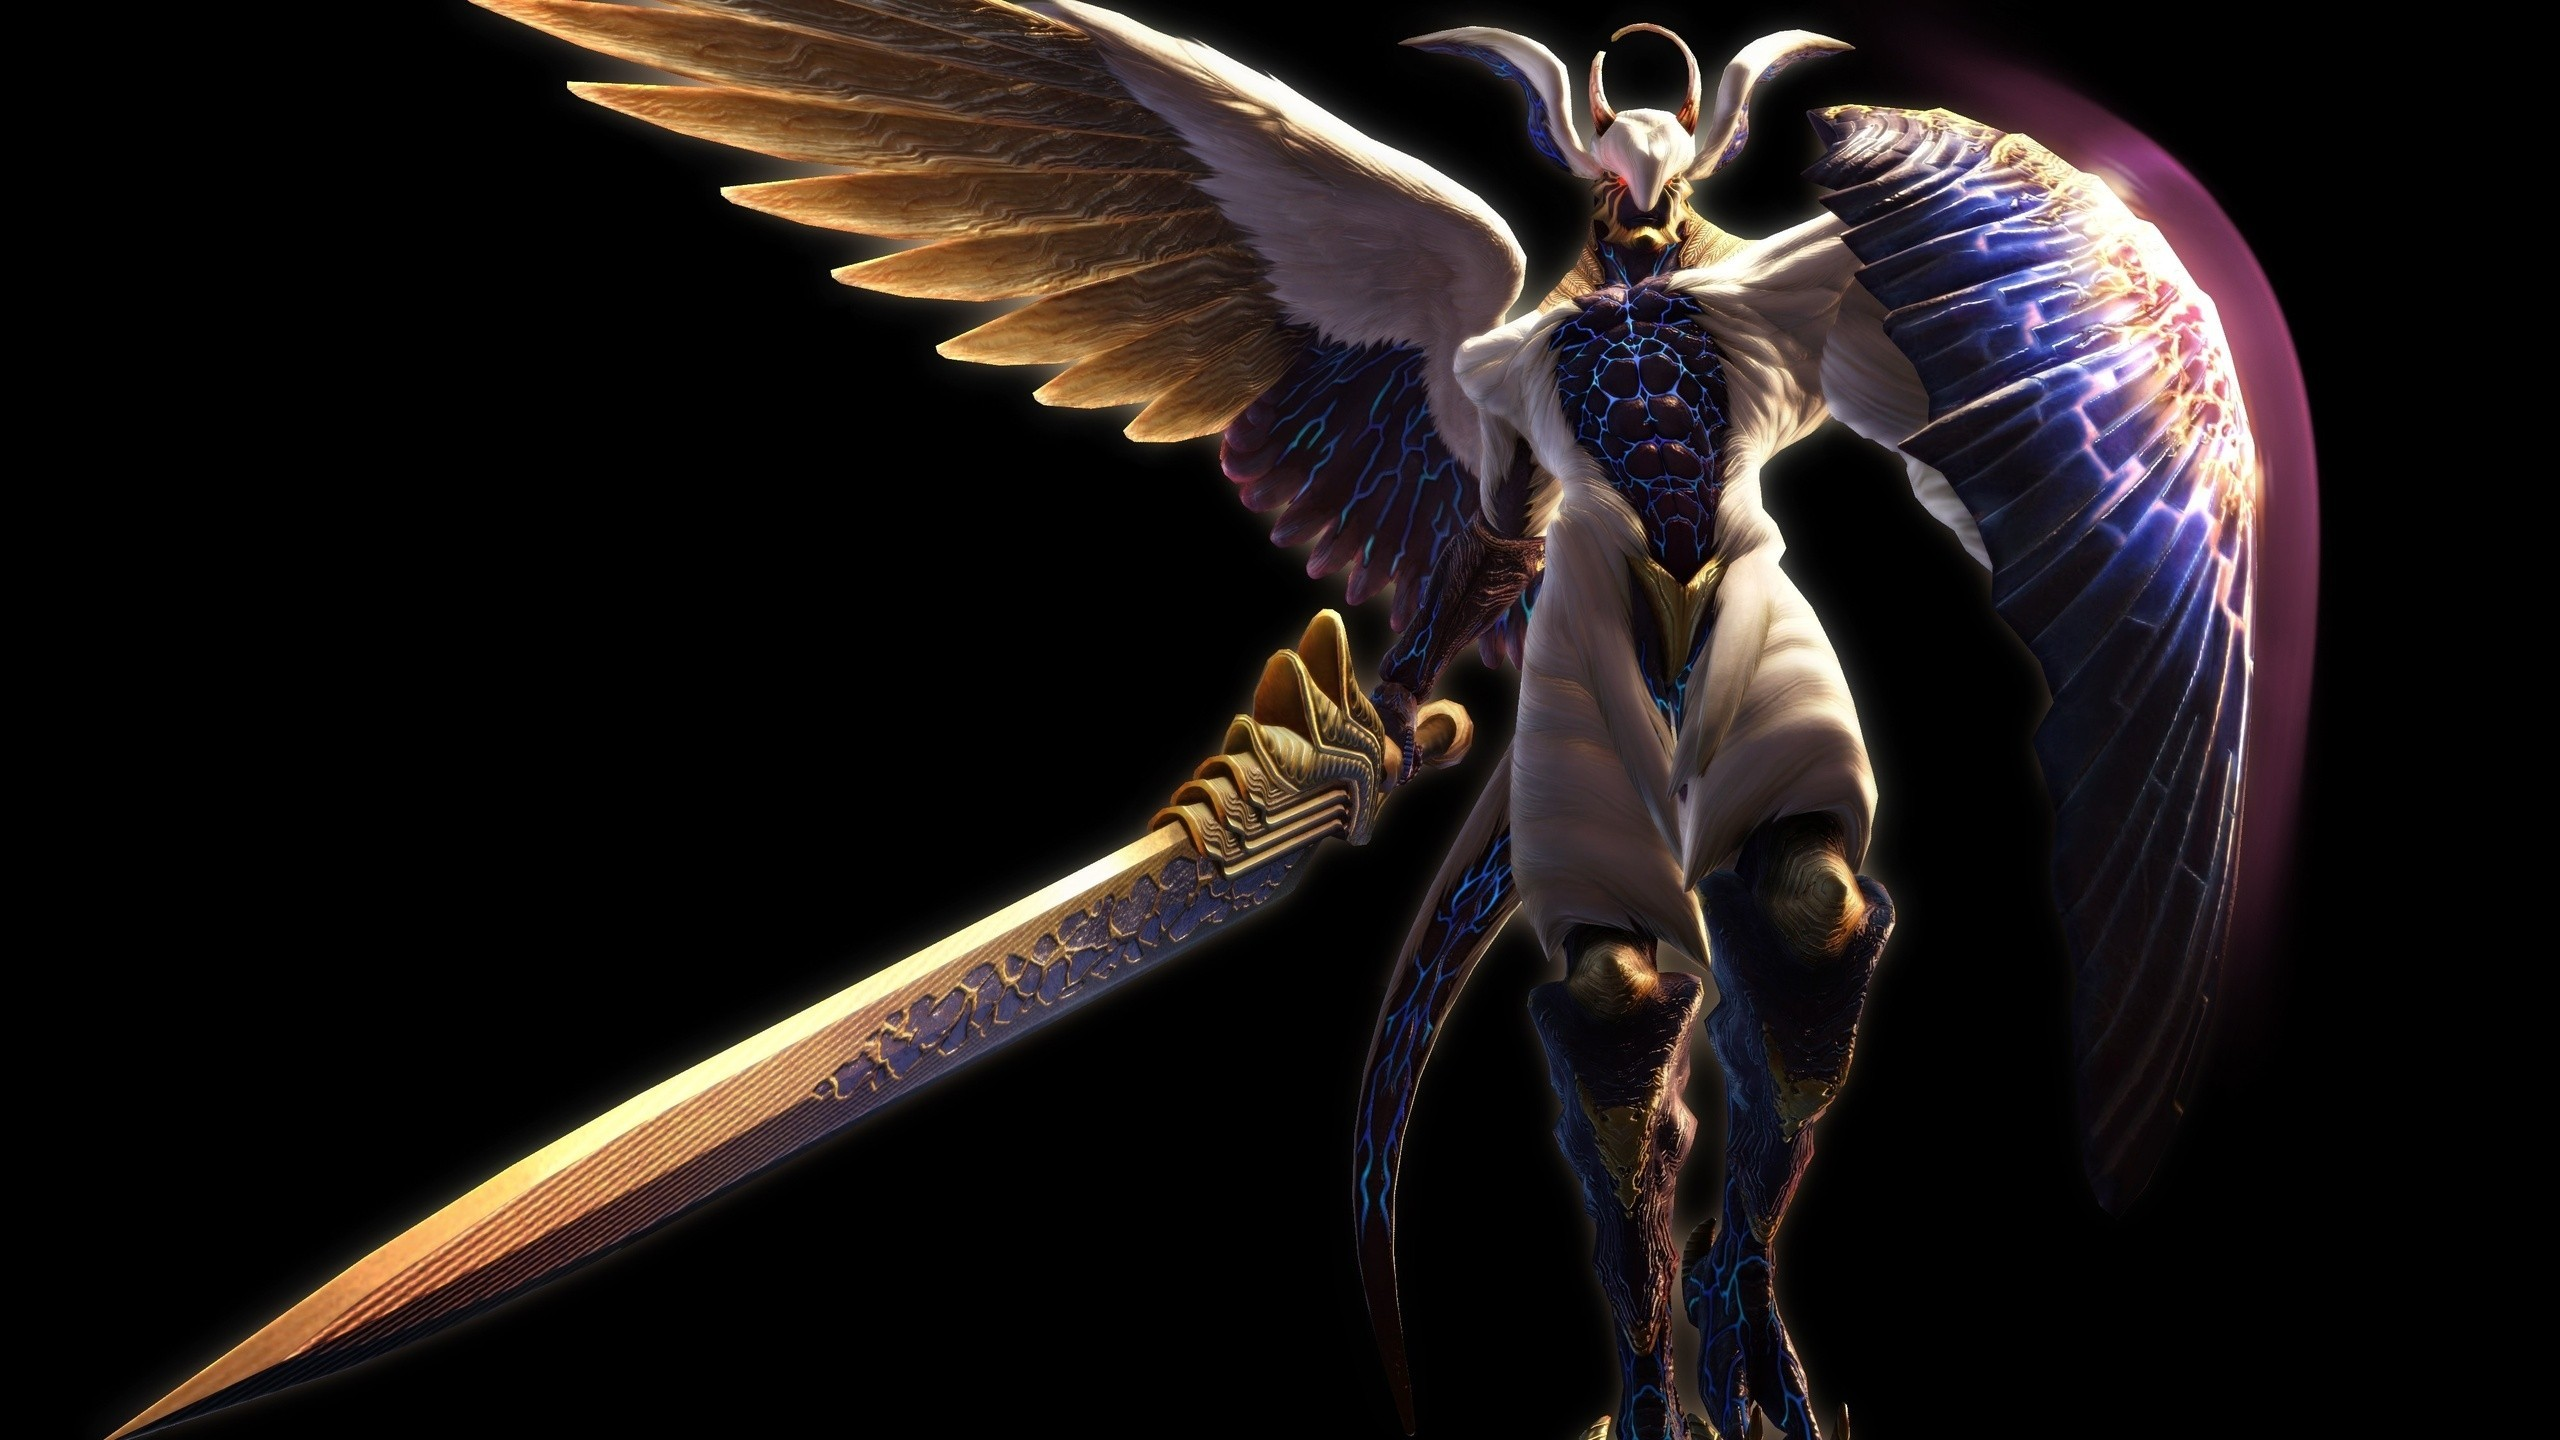 Fantasy Devil May Cry angel warrior weapons sword wallpaper | |  58558 | WallpaperUP